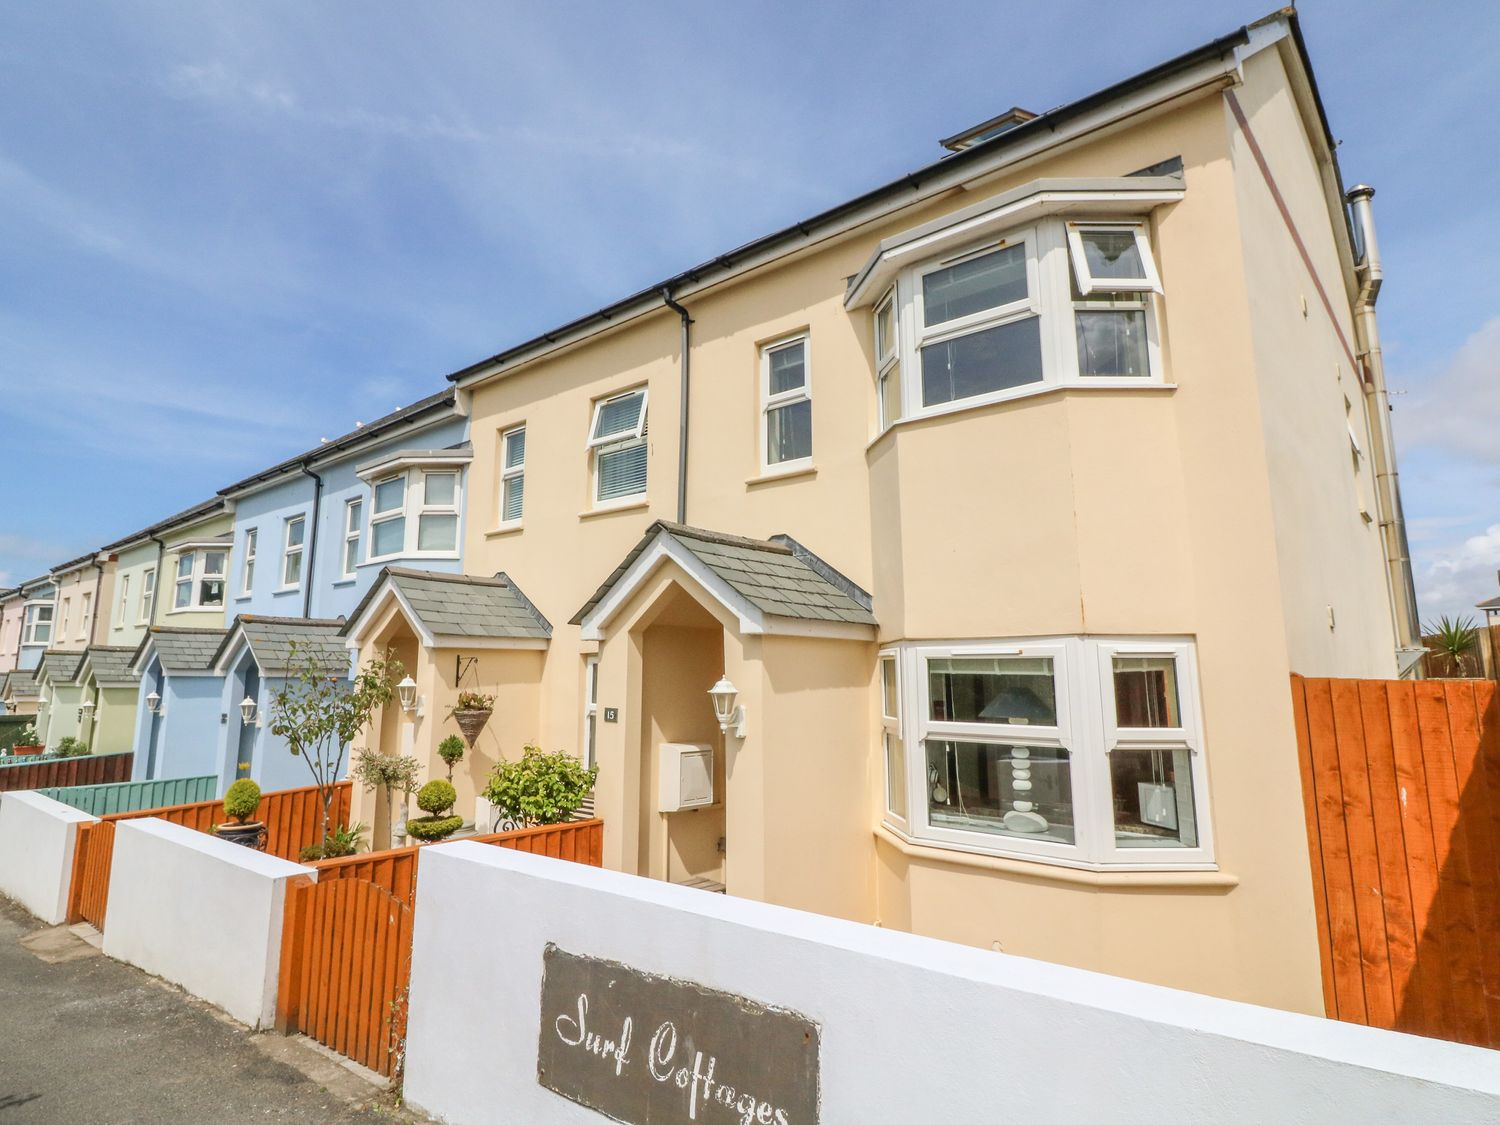 15 Surf Cottages - Devon - 1013645 - photo 1